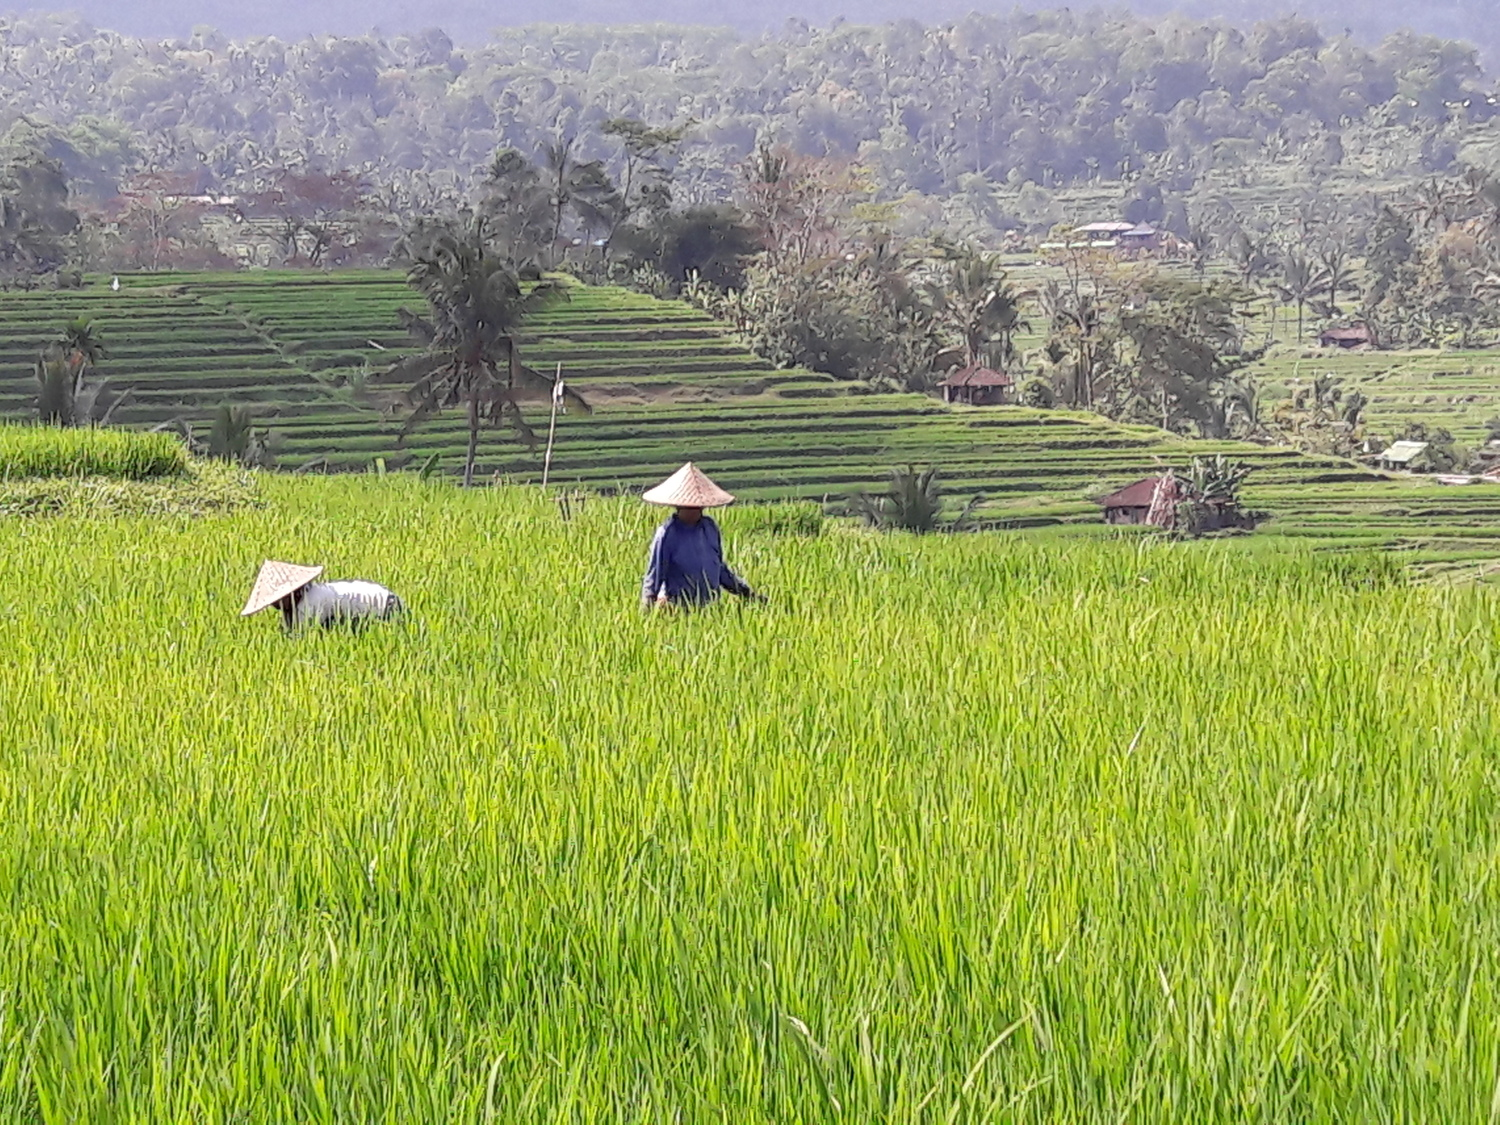 Poor people's diets are often dominated by staple foods. Rice cultivation in Indonesia.